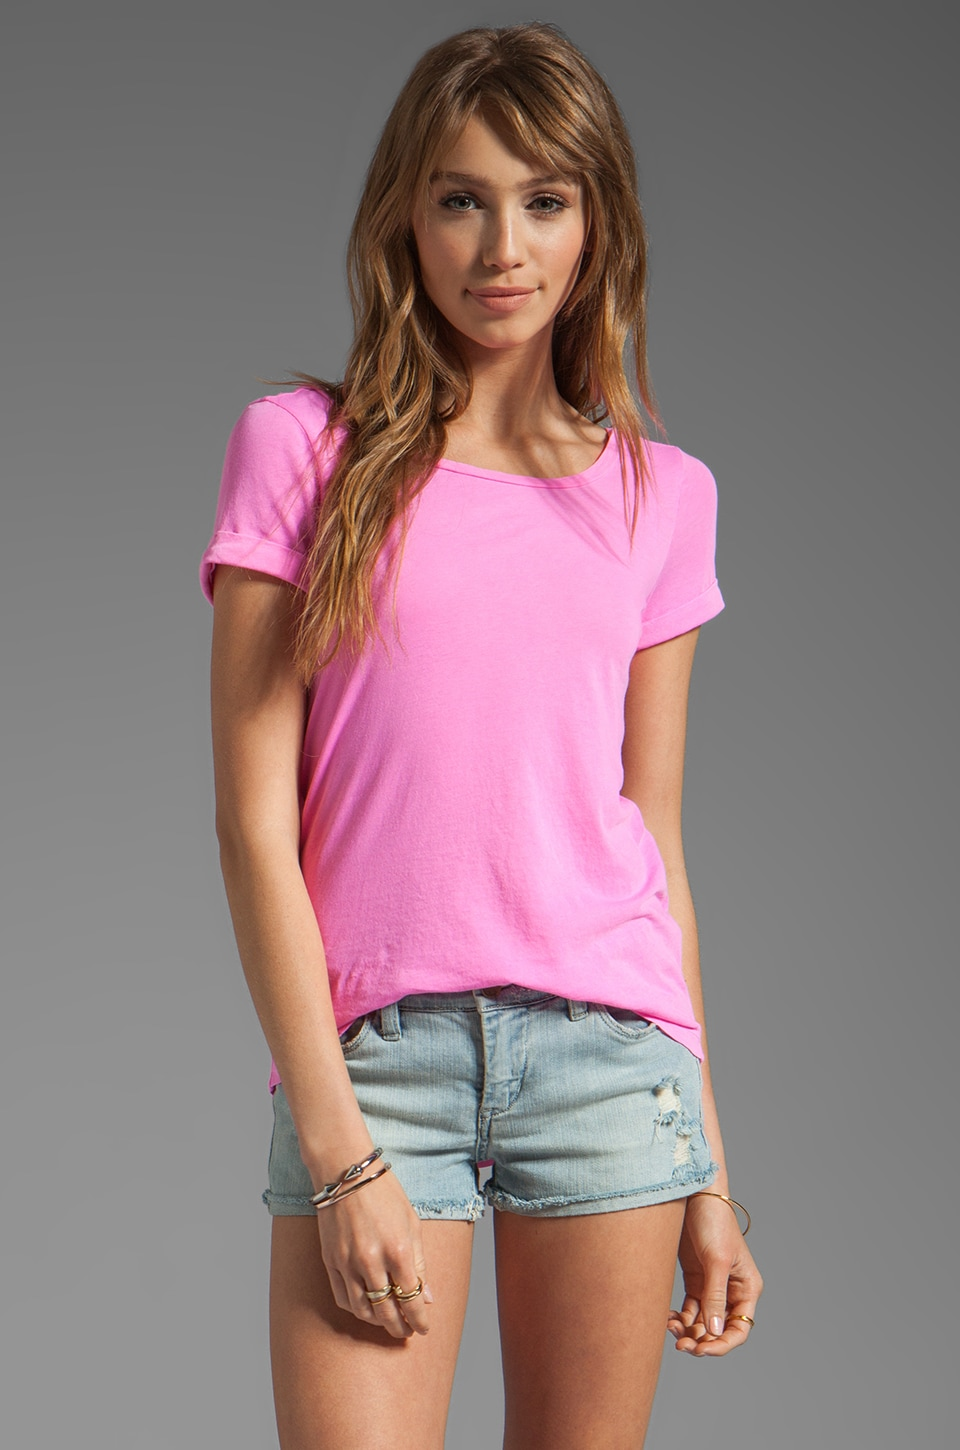 Splendid Vintage Whisper Low Back Tee in Taffy